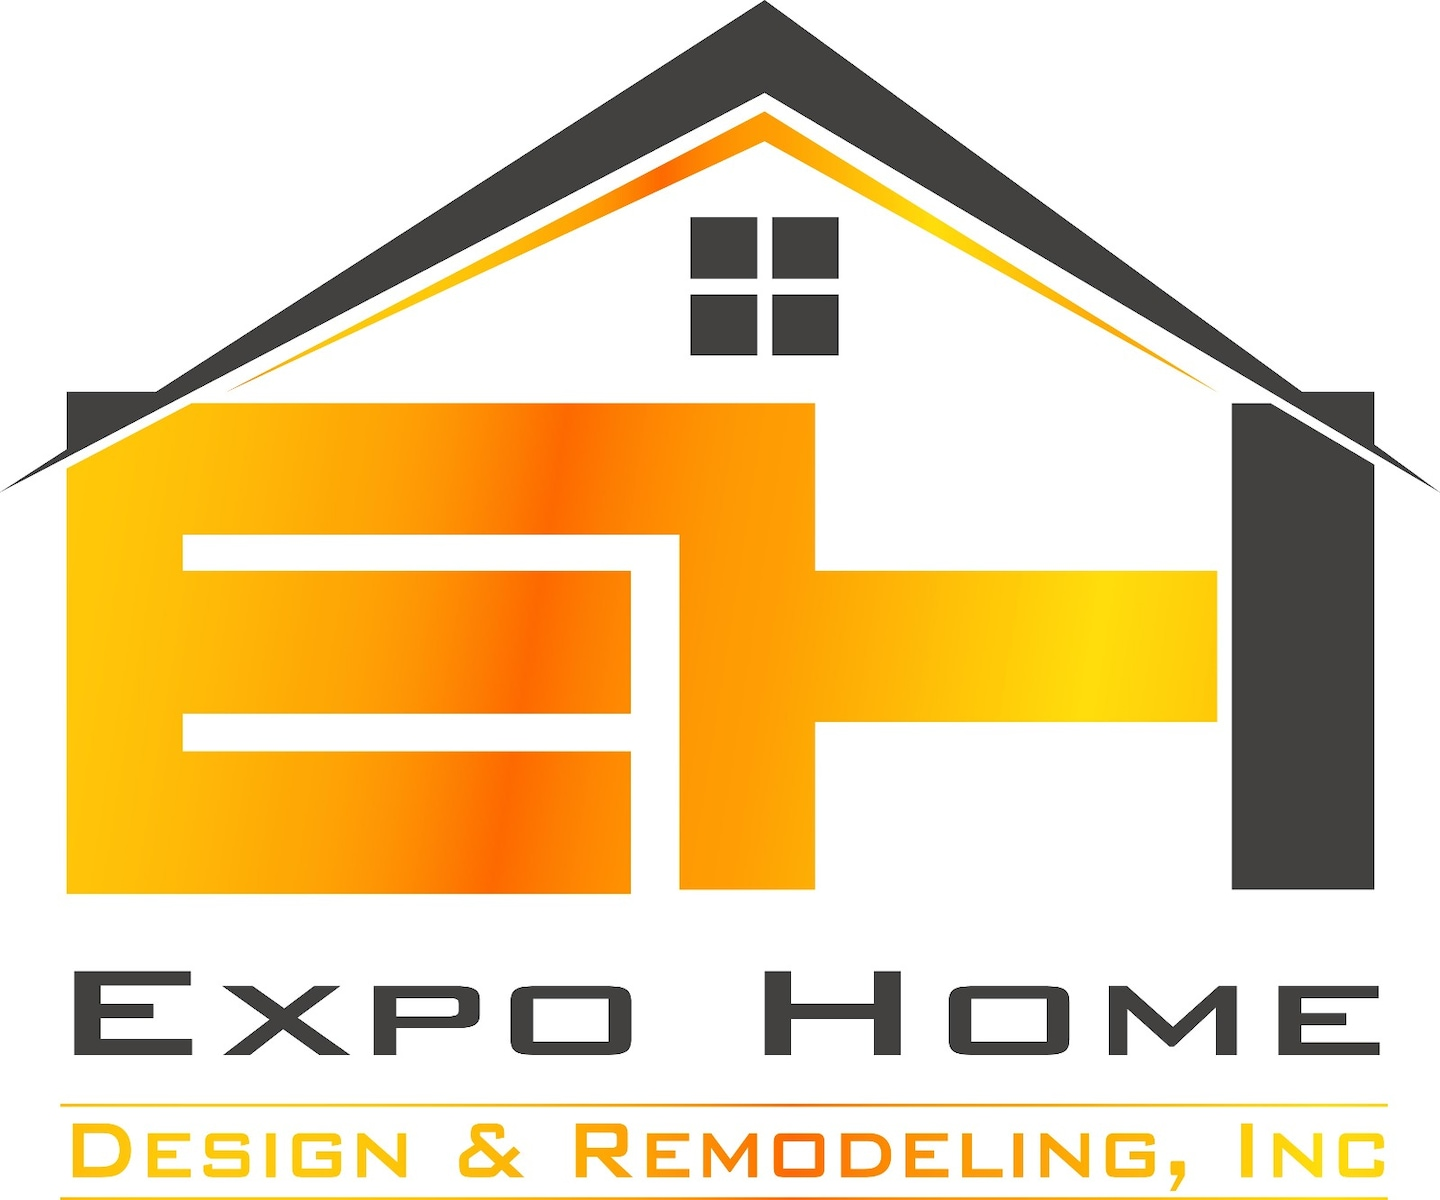 Expo Home Design & Remodeling Inc